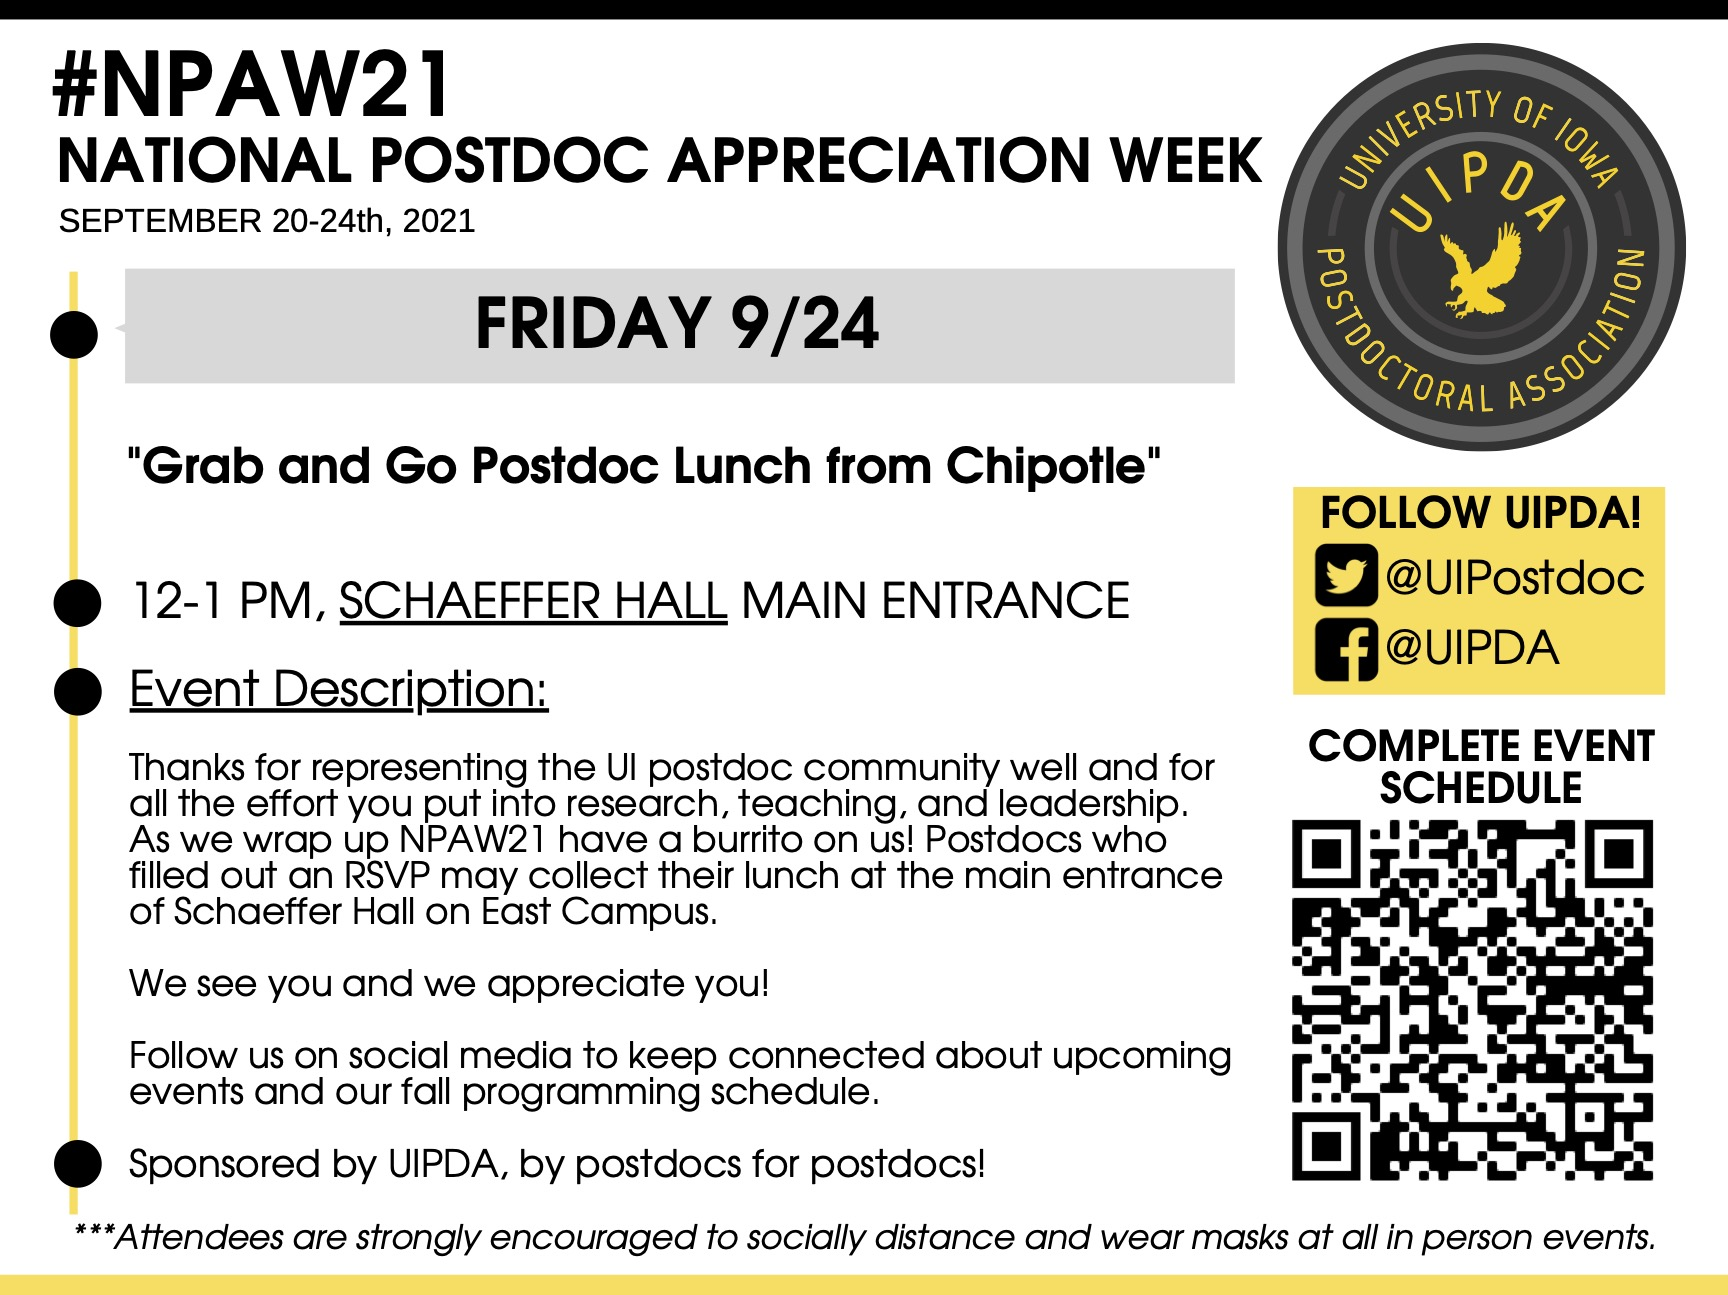 Friday 9/24: Grab and Go Postdoc Lunch from Chipotle